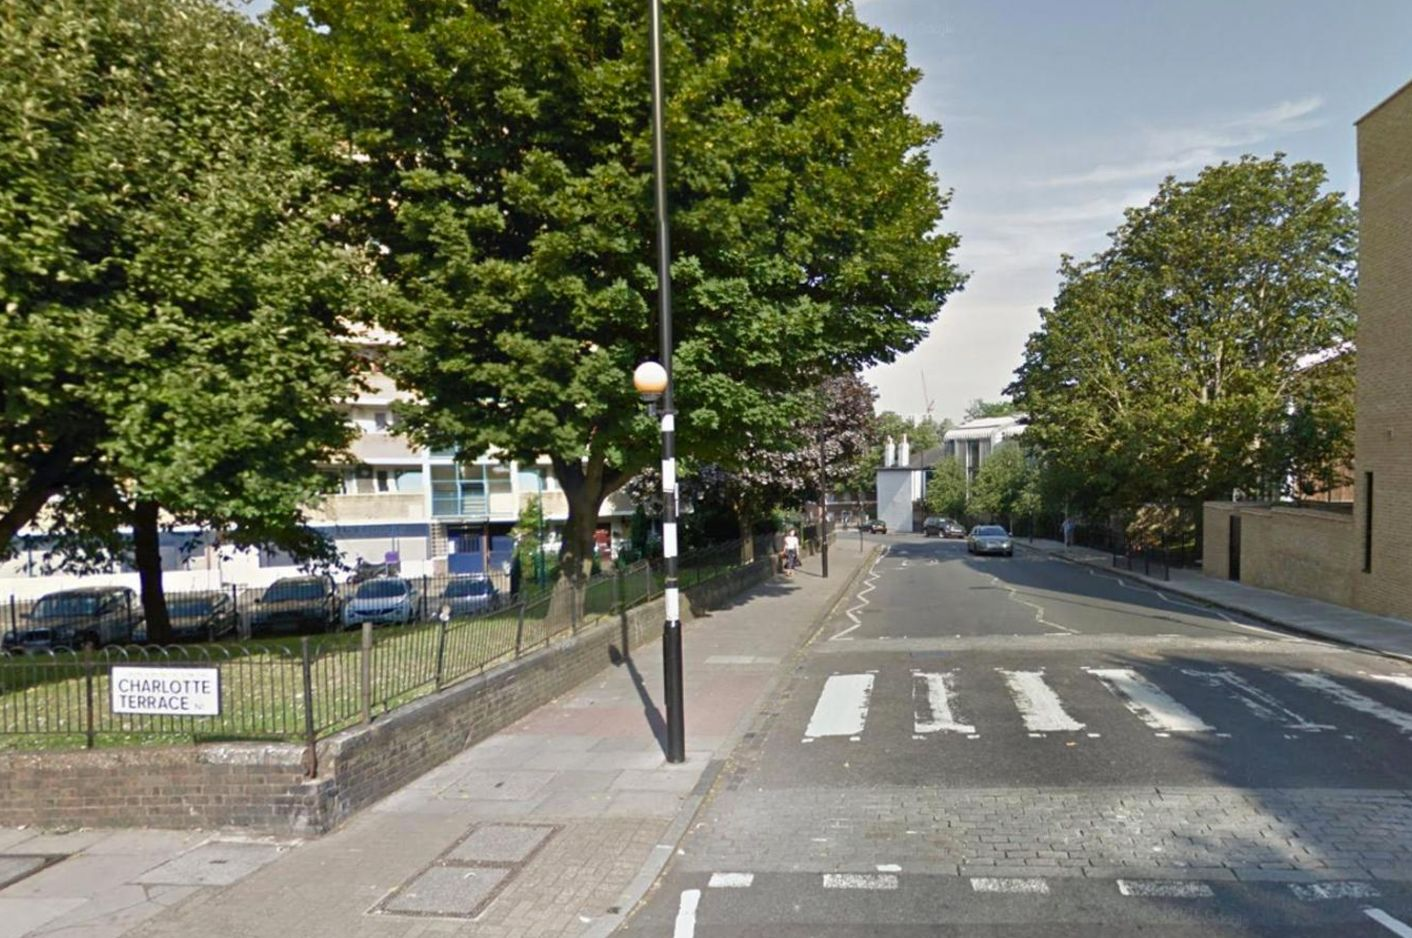 A father, mother and their son were attacked with acid in Islington, north